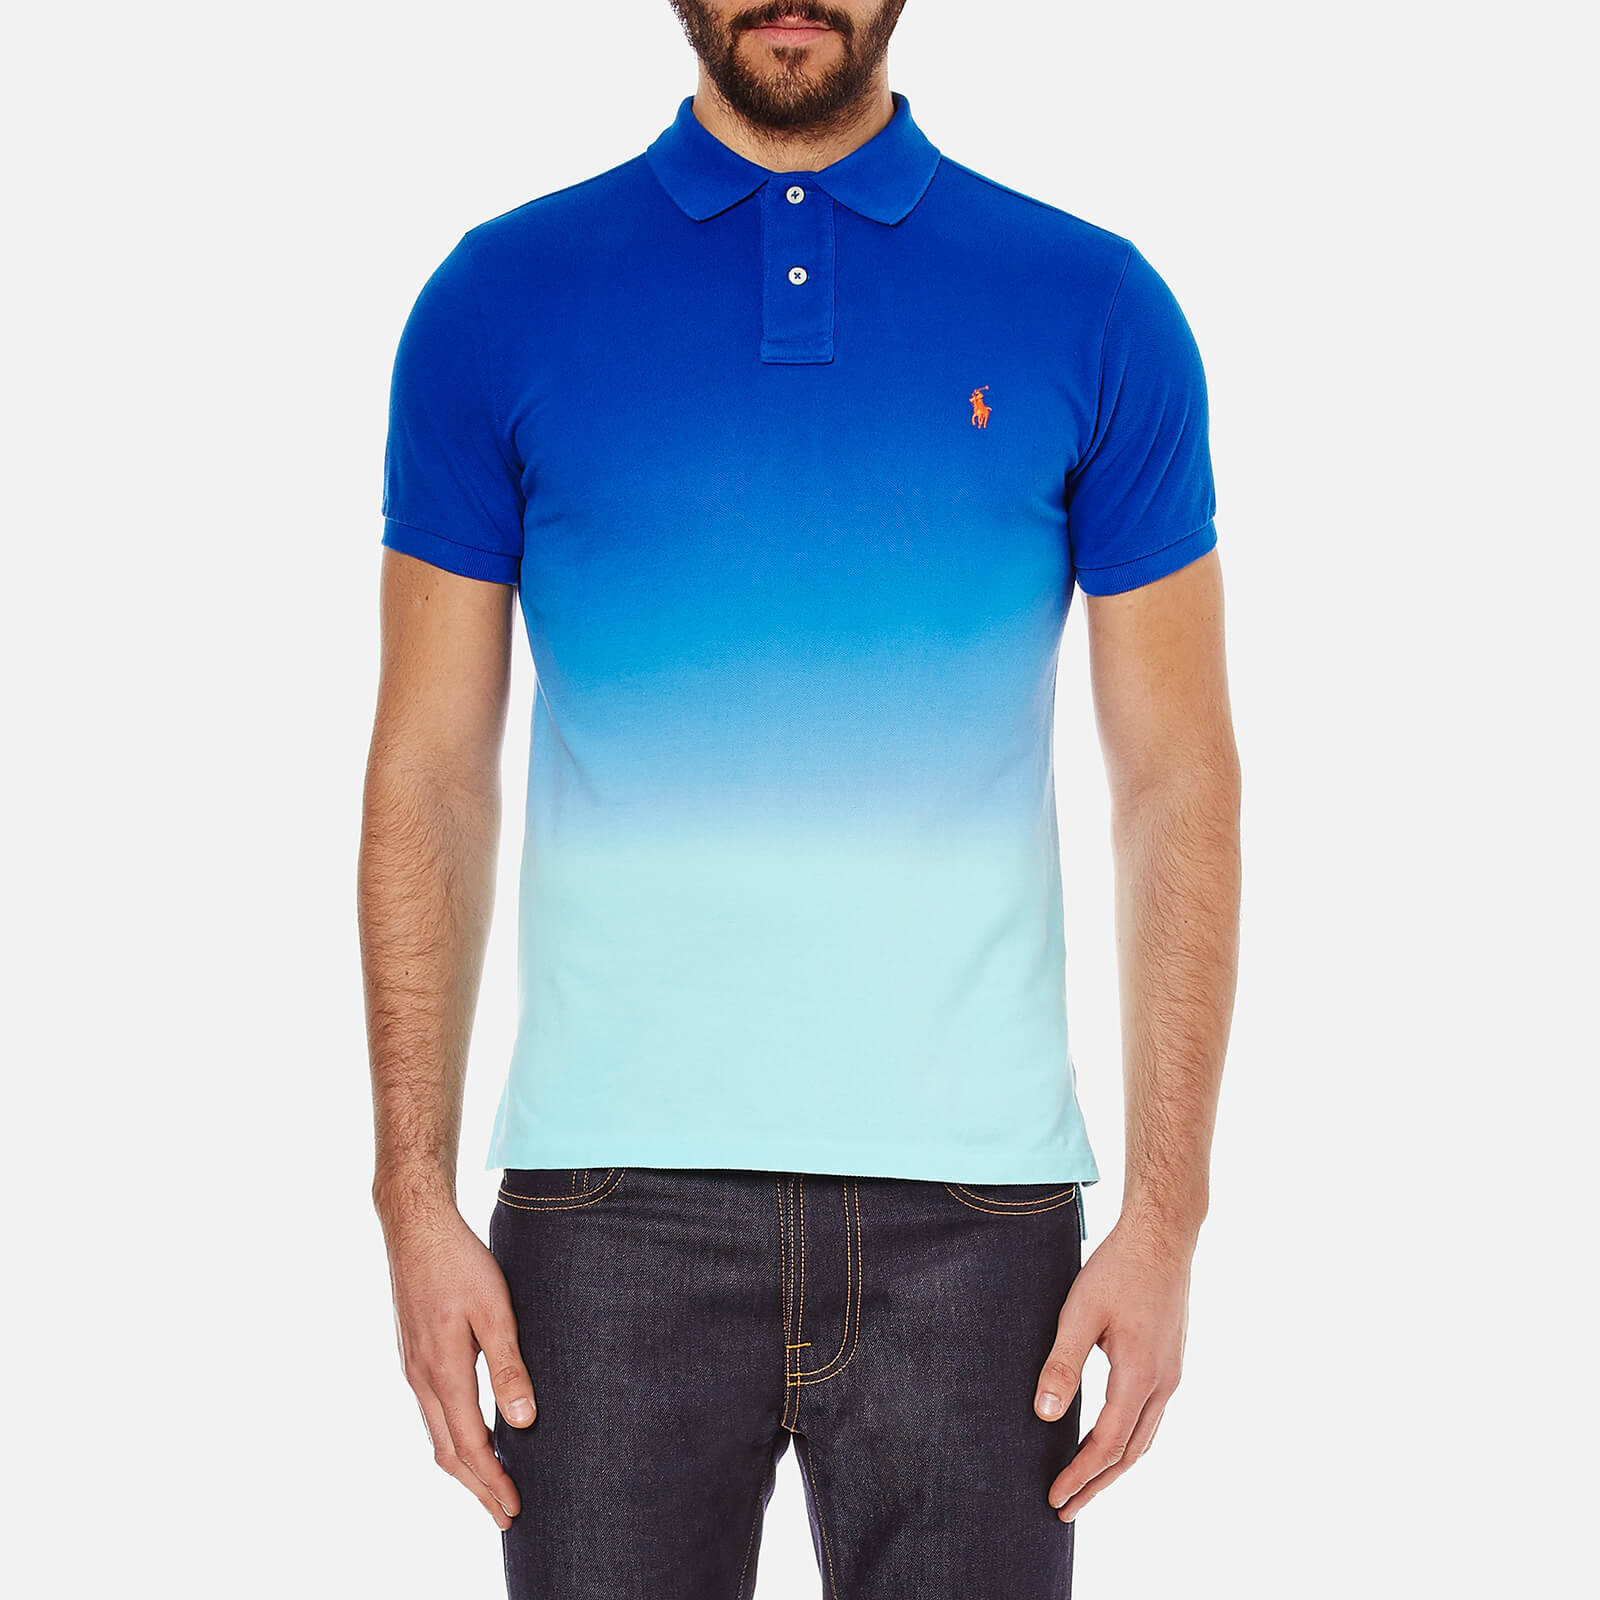 637eee20e Polo Ralph Lauren Men s Dip Dyed Polo Shirt - Bright Imperial Blue - Free  UK Delivery over £50